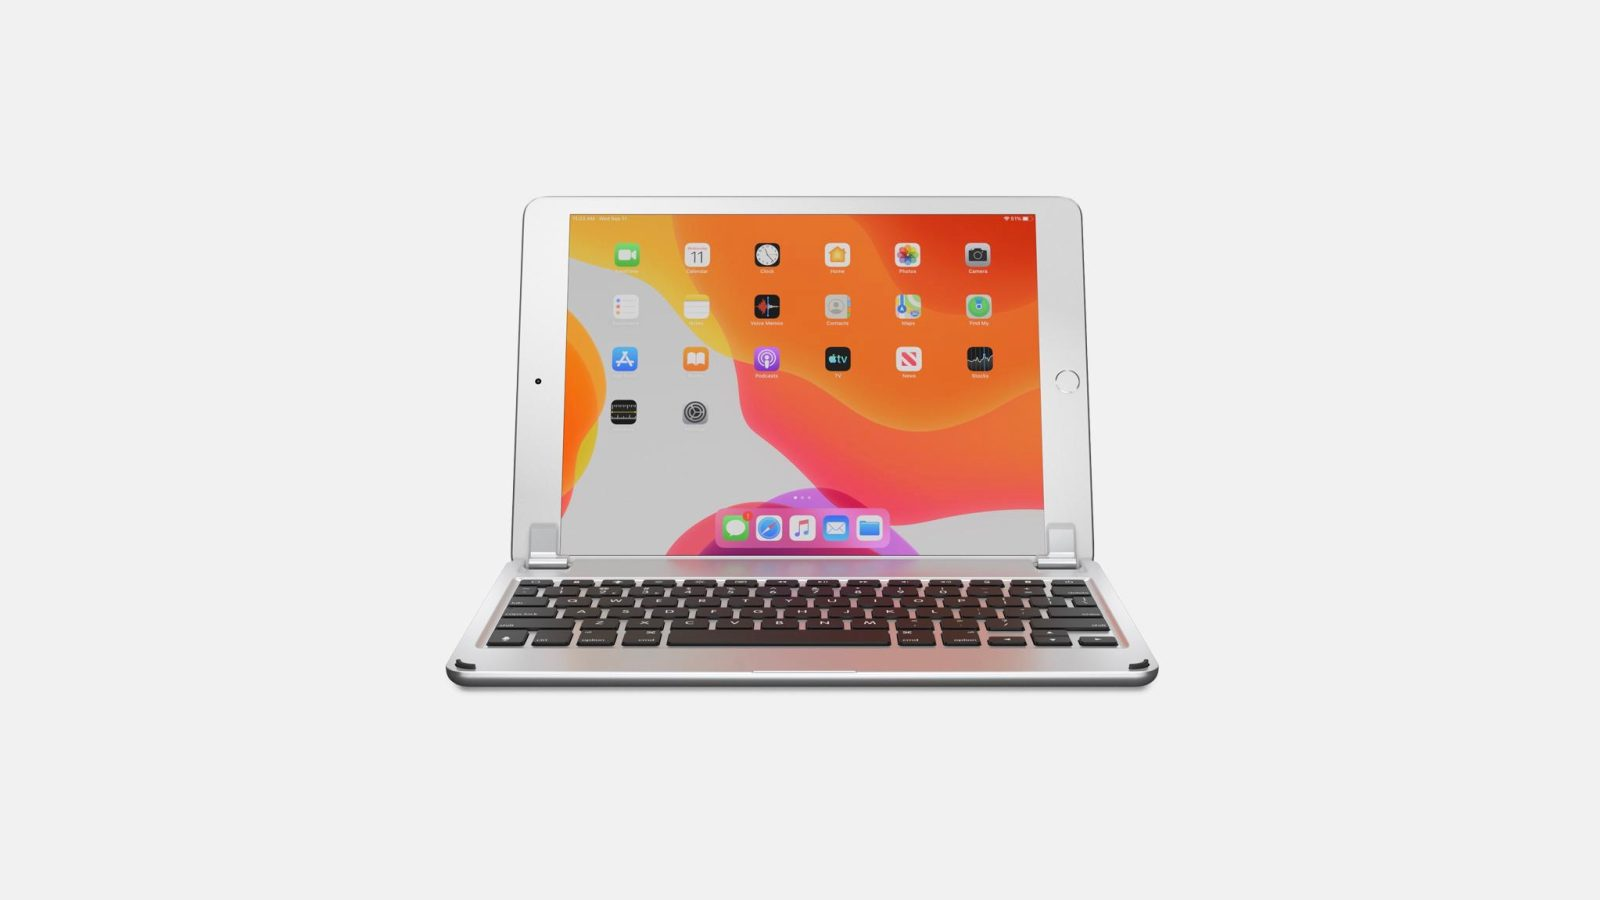 Brydge unveils MacBook-style keyboard case for Apple's new 10.2-inch iPad